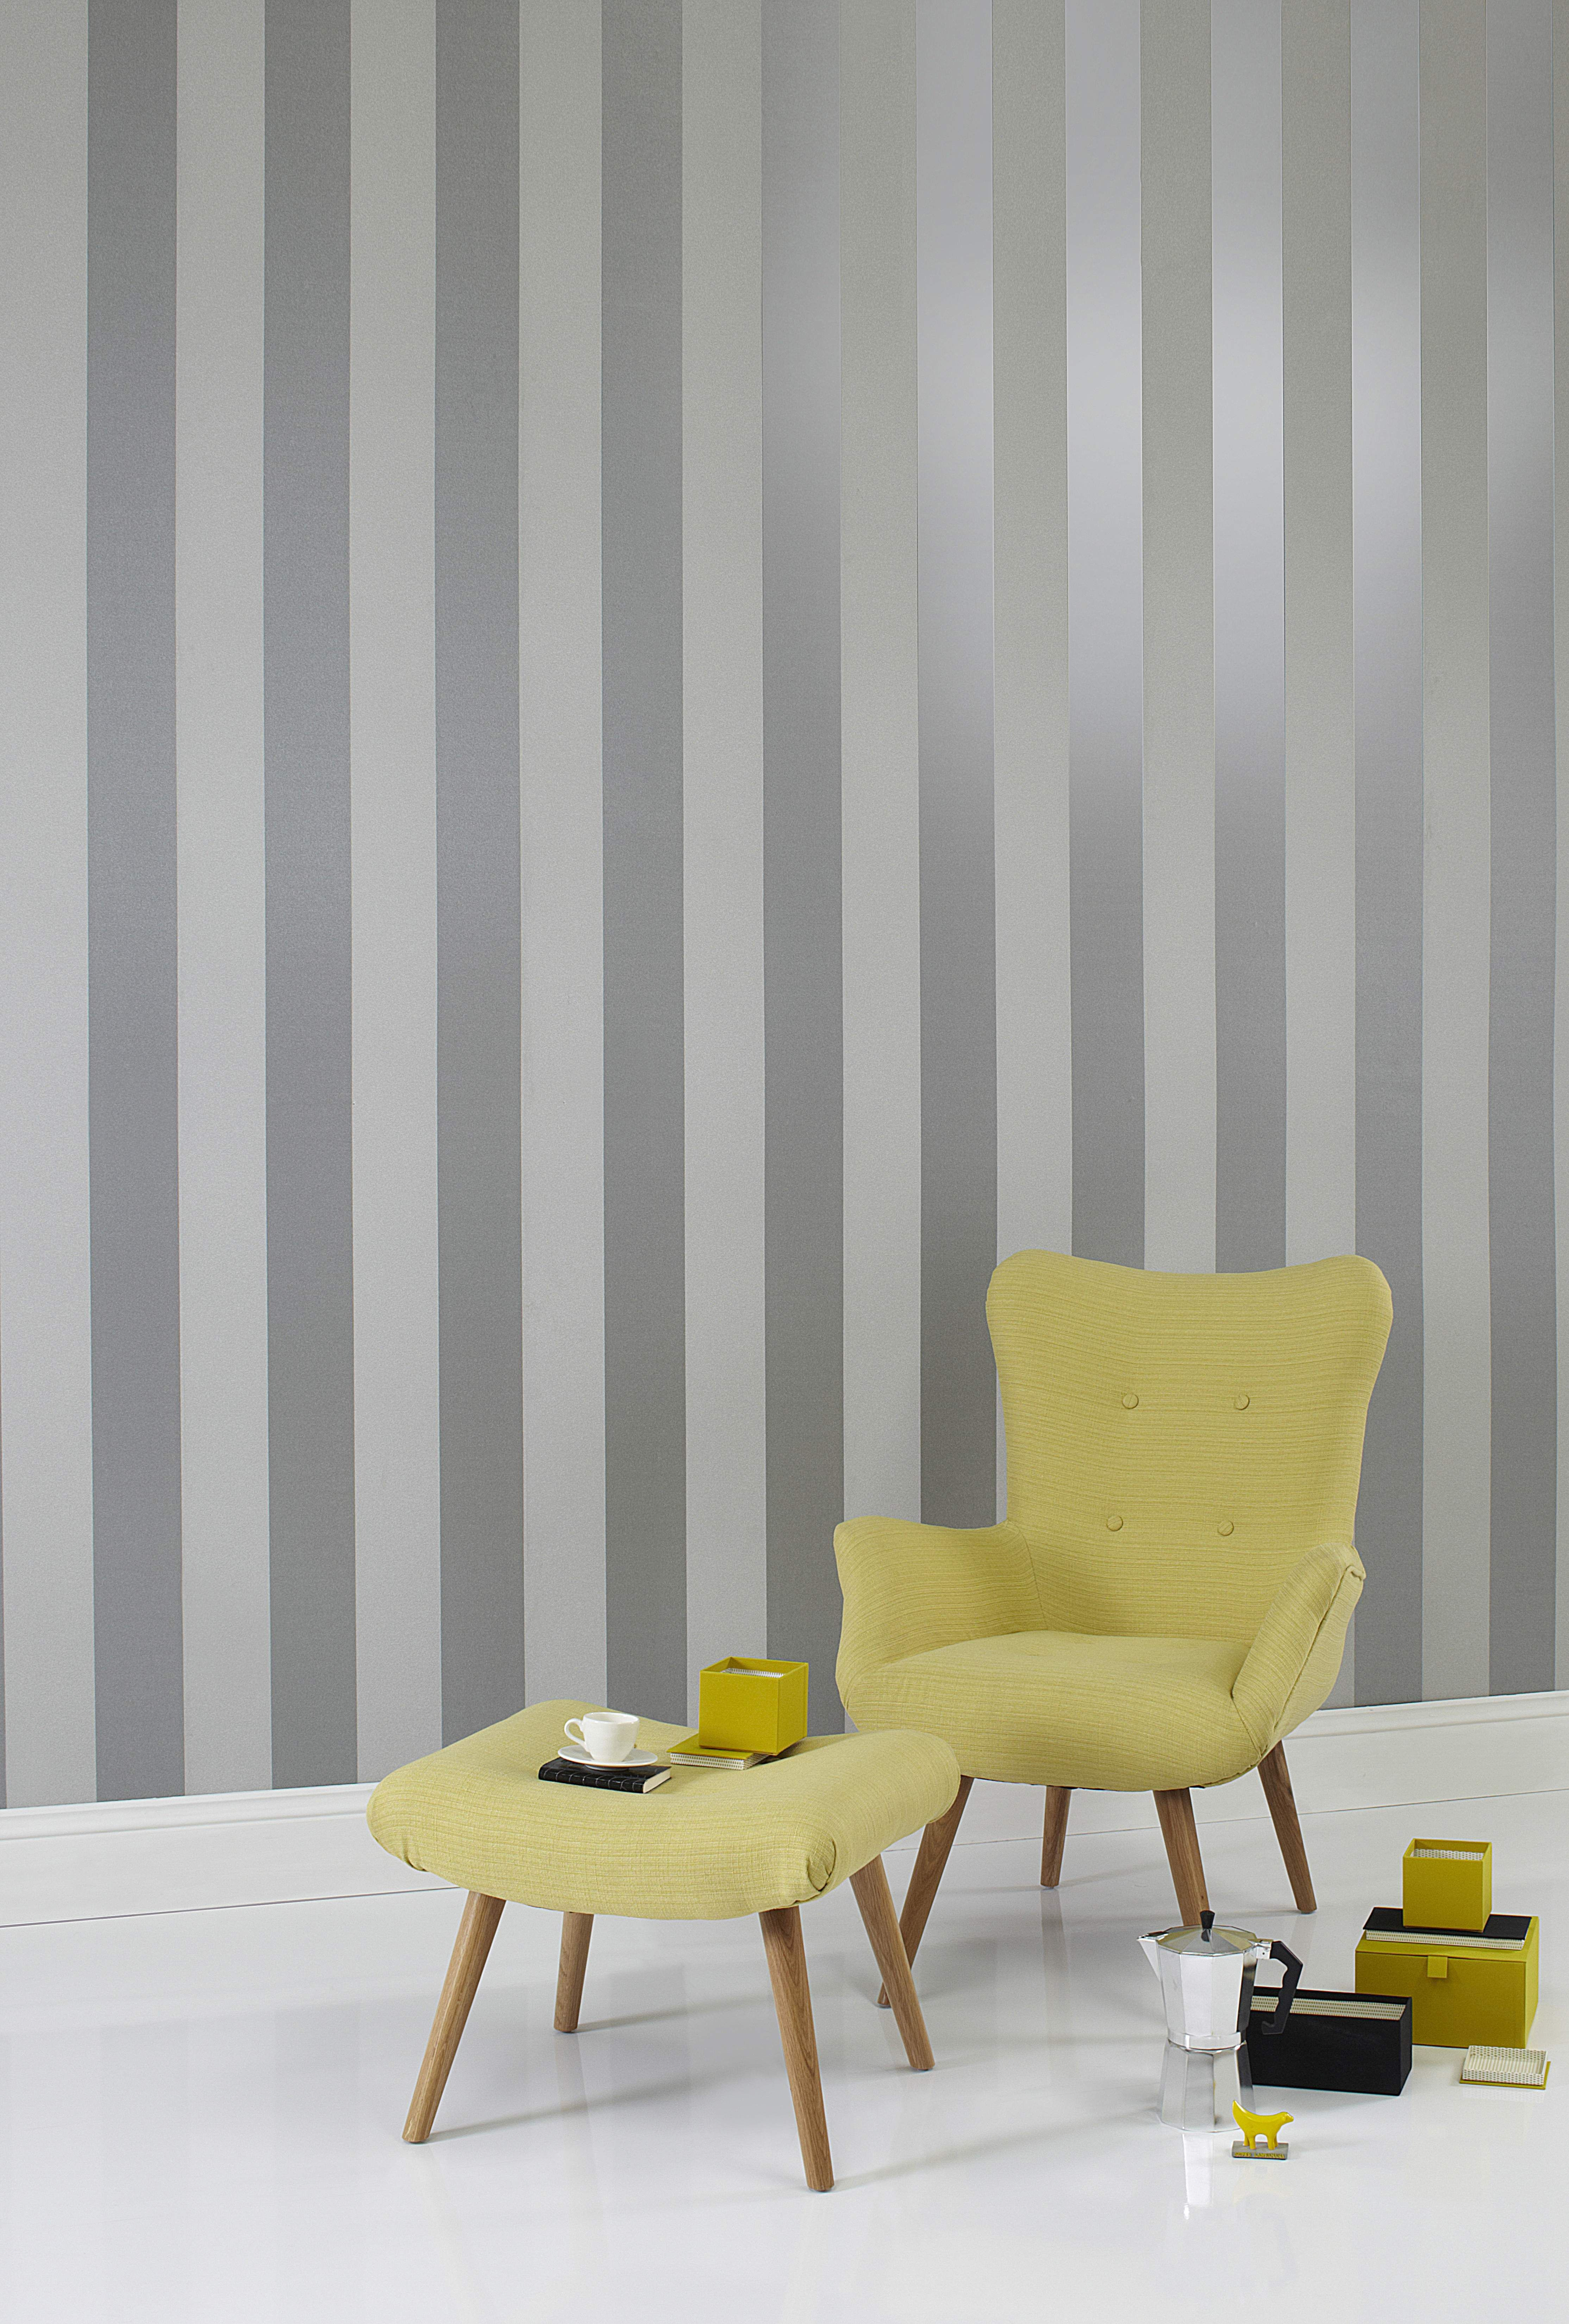 Metallic Stripes And Tuxtural Grit Effects Make A Statement Wallpaper